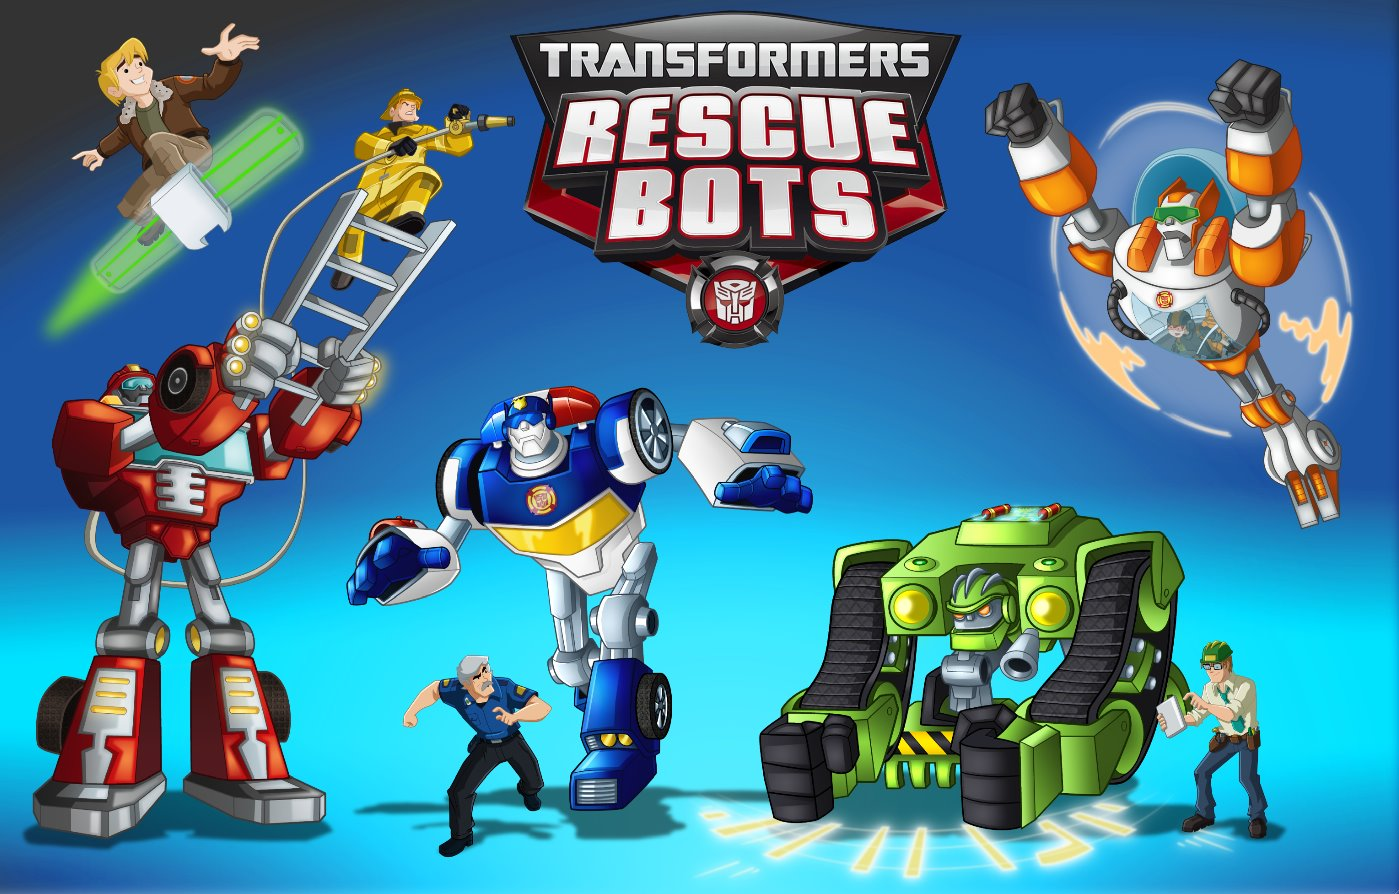 Transformers-Rescue-Bots_1322700812_1331065662